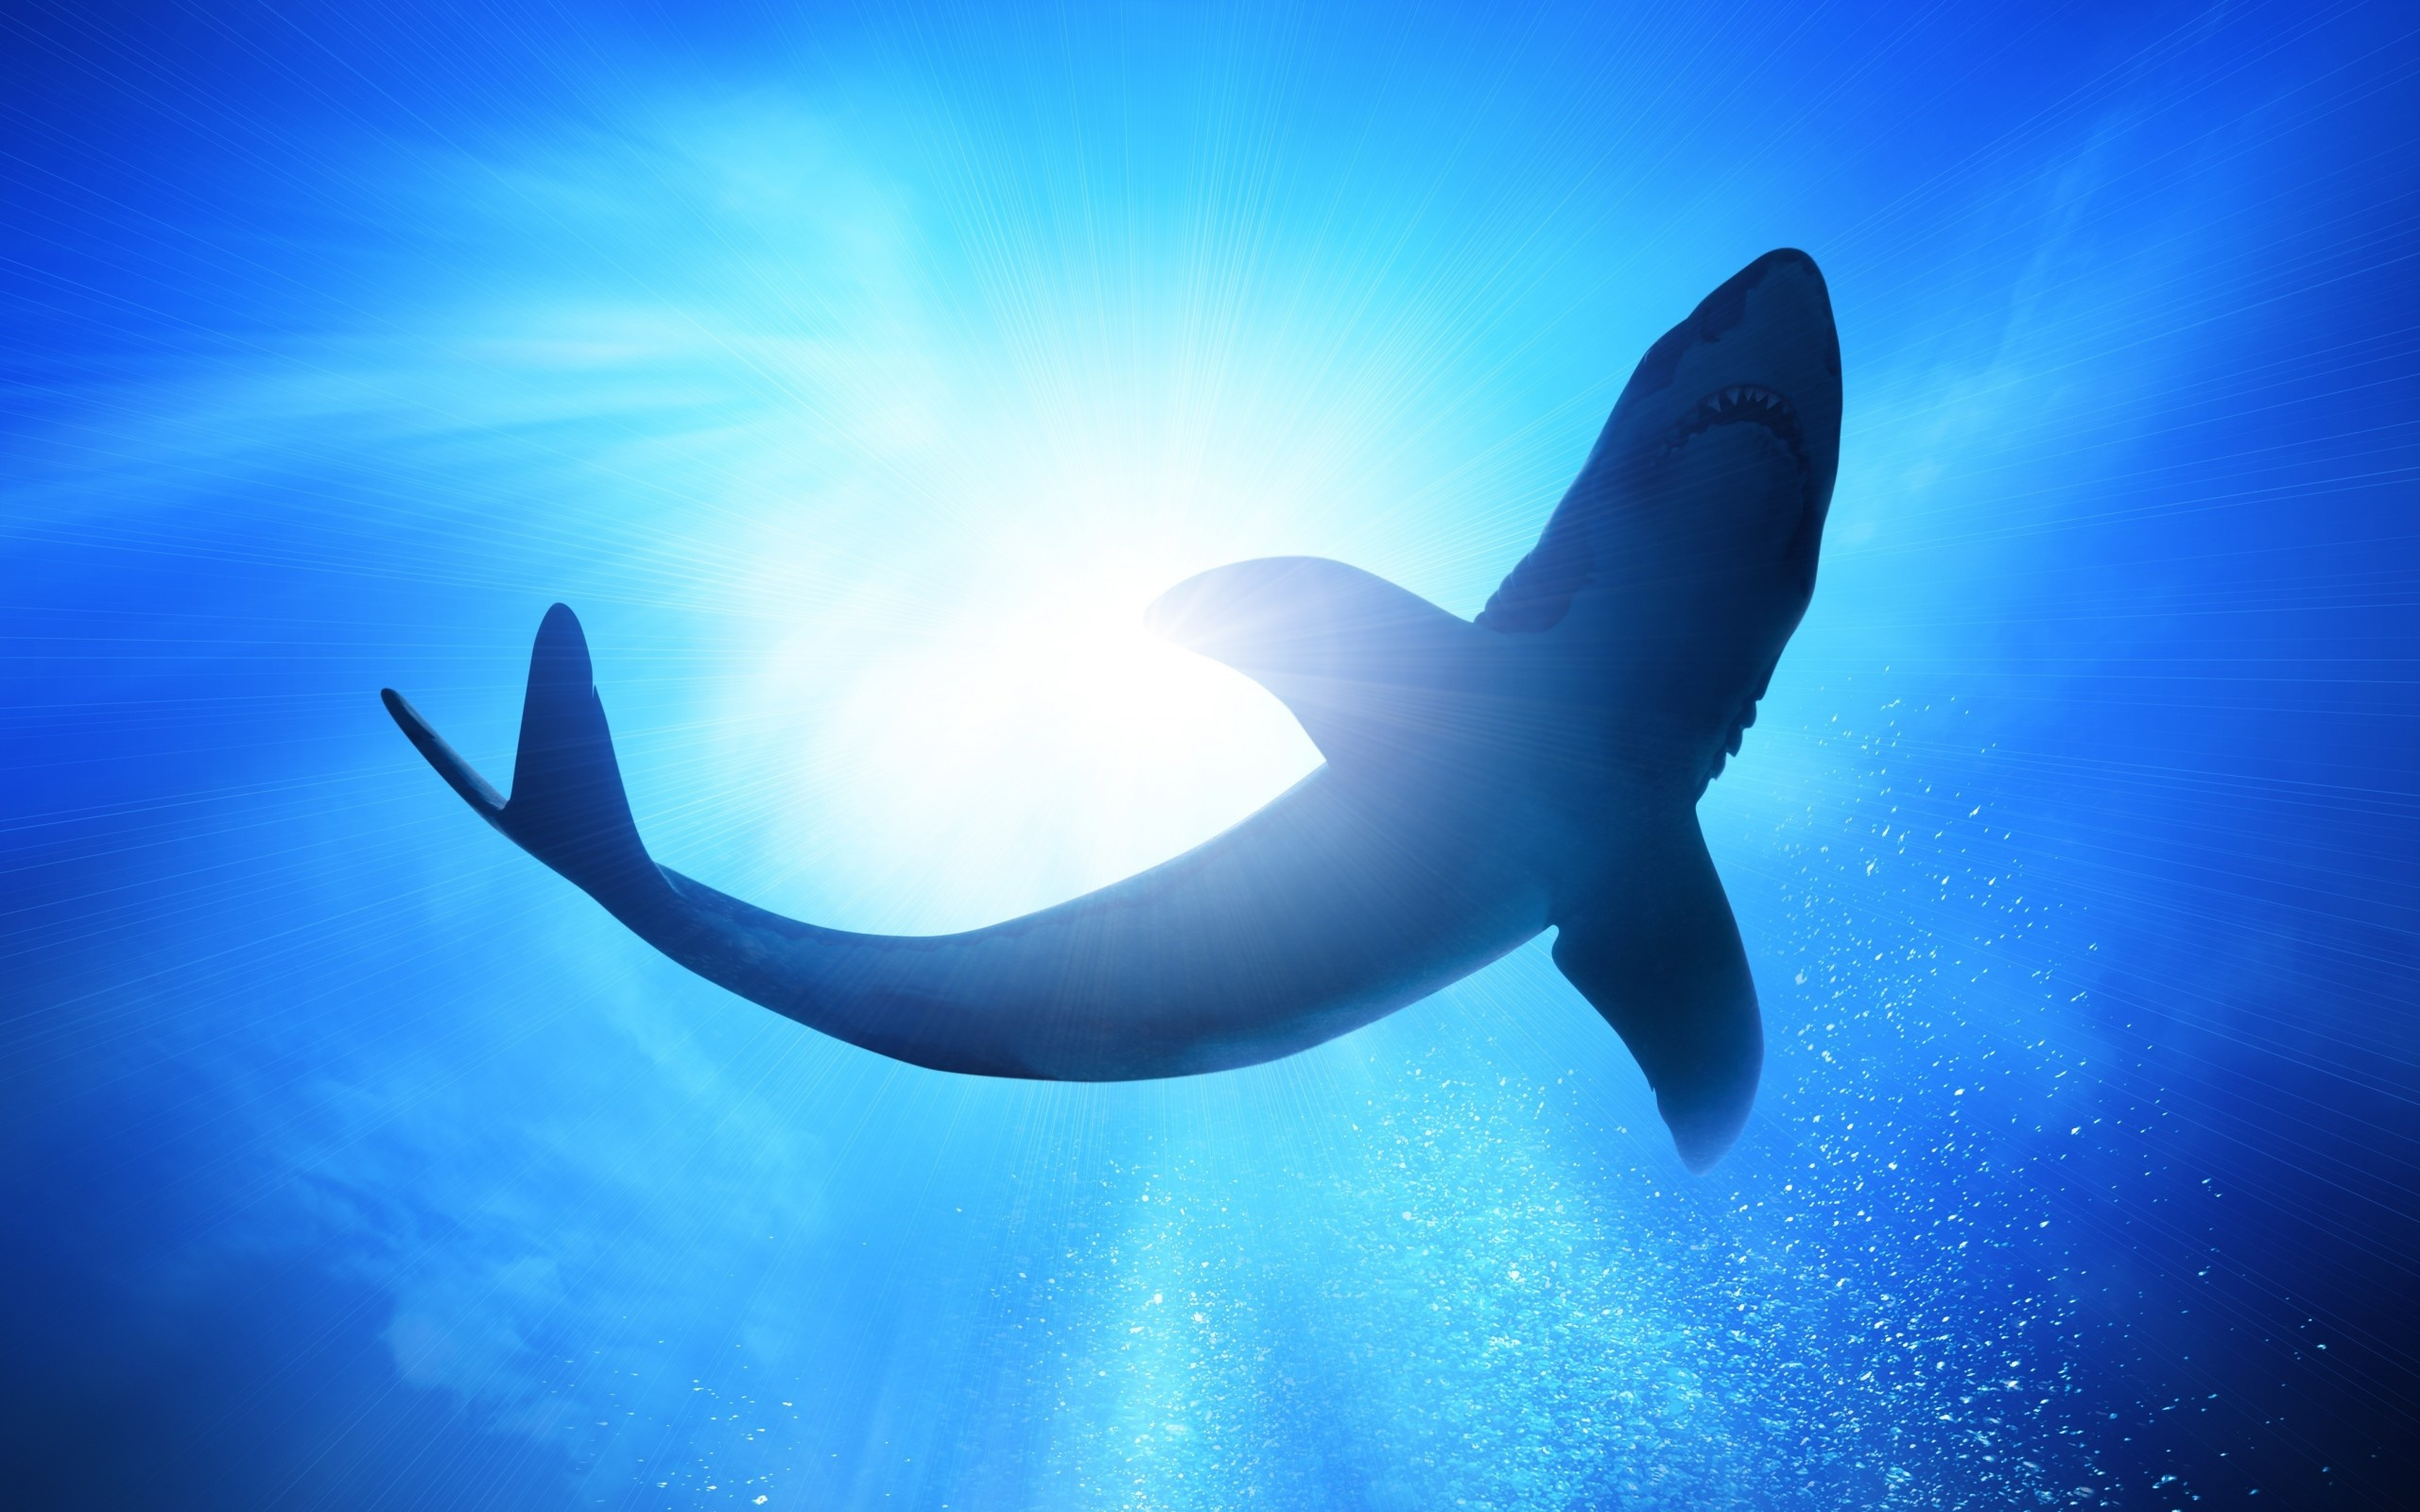 download wallpaper shark 1600 - photo #43